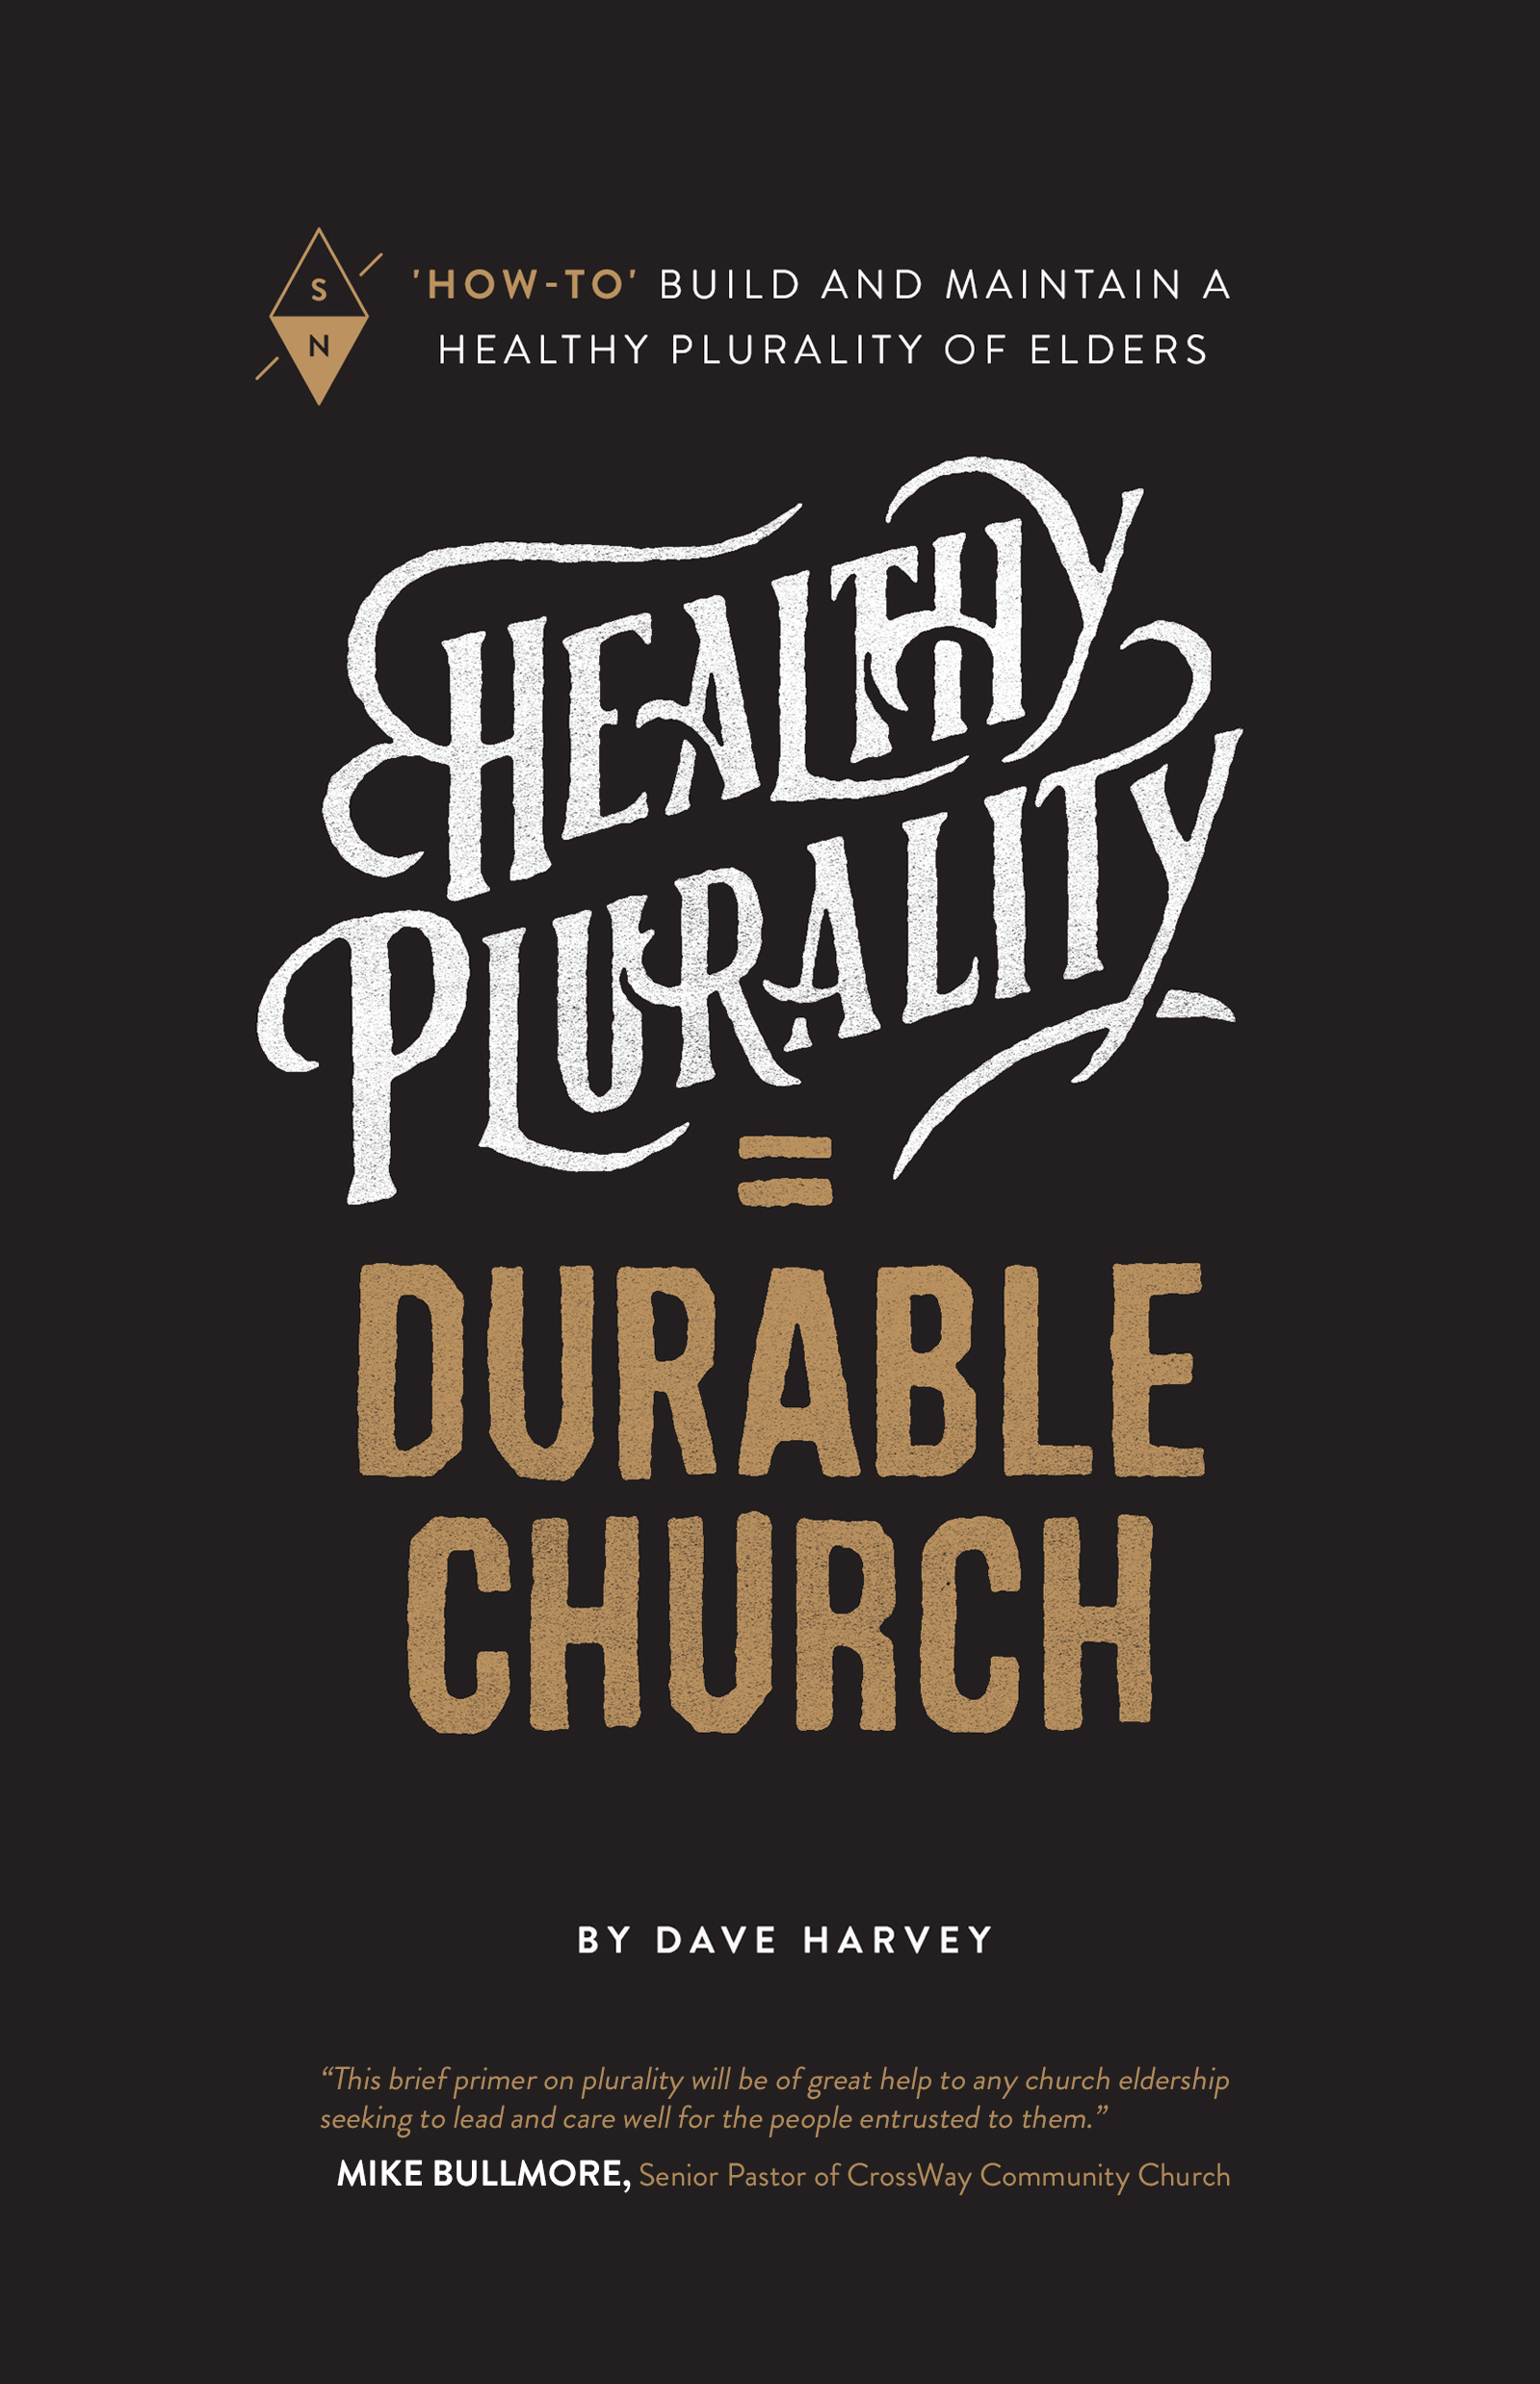 HEALTHY PLURALITY = DURABLE CHURCH by Dave Harvey (cover image).jpg